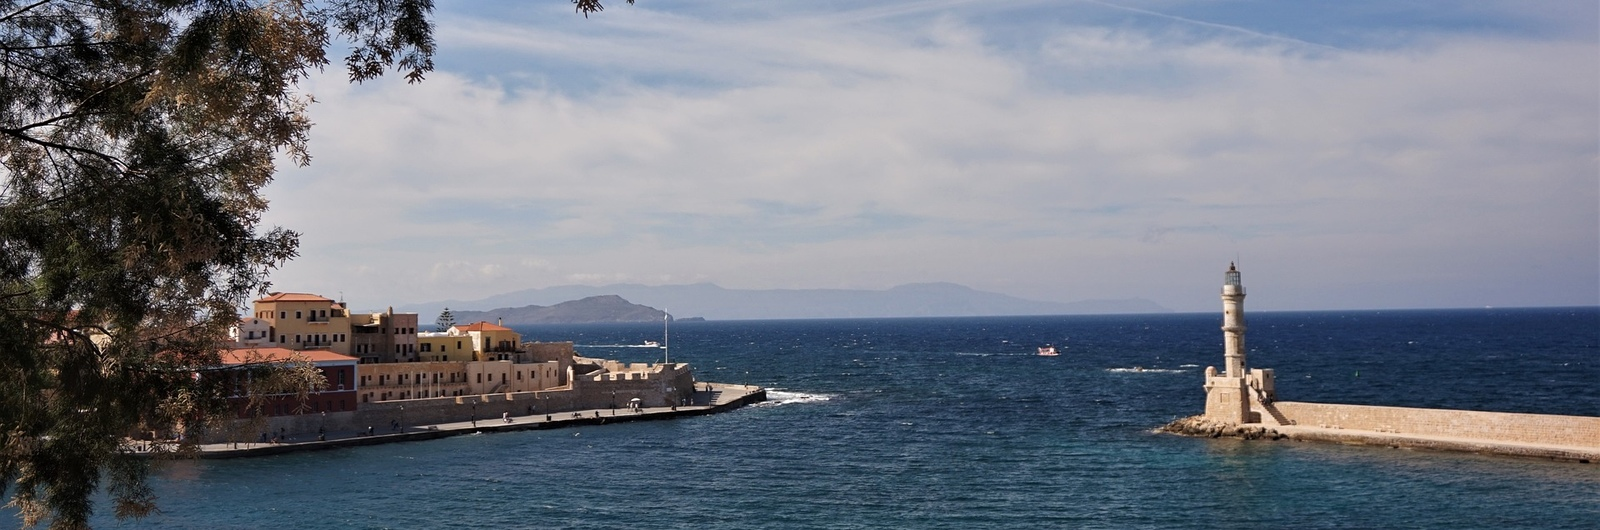 chania city header